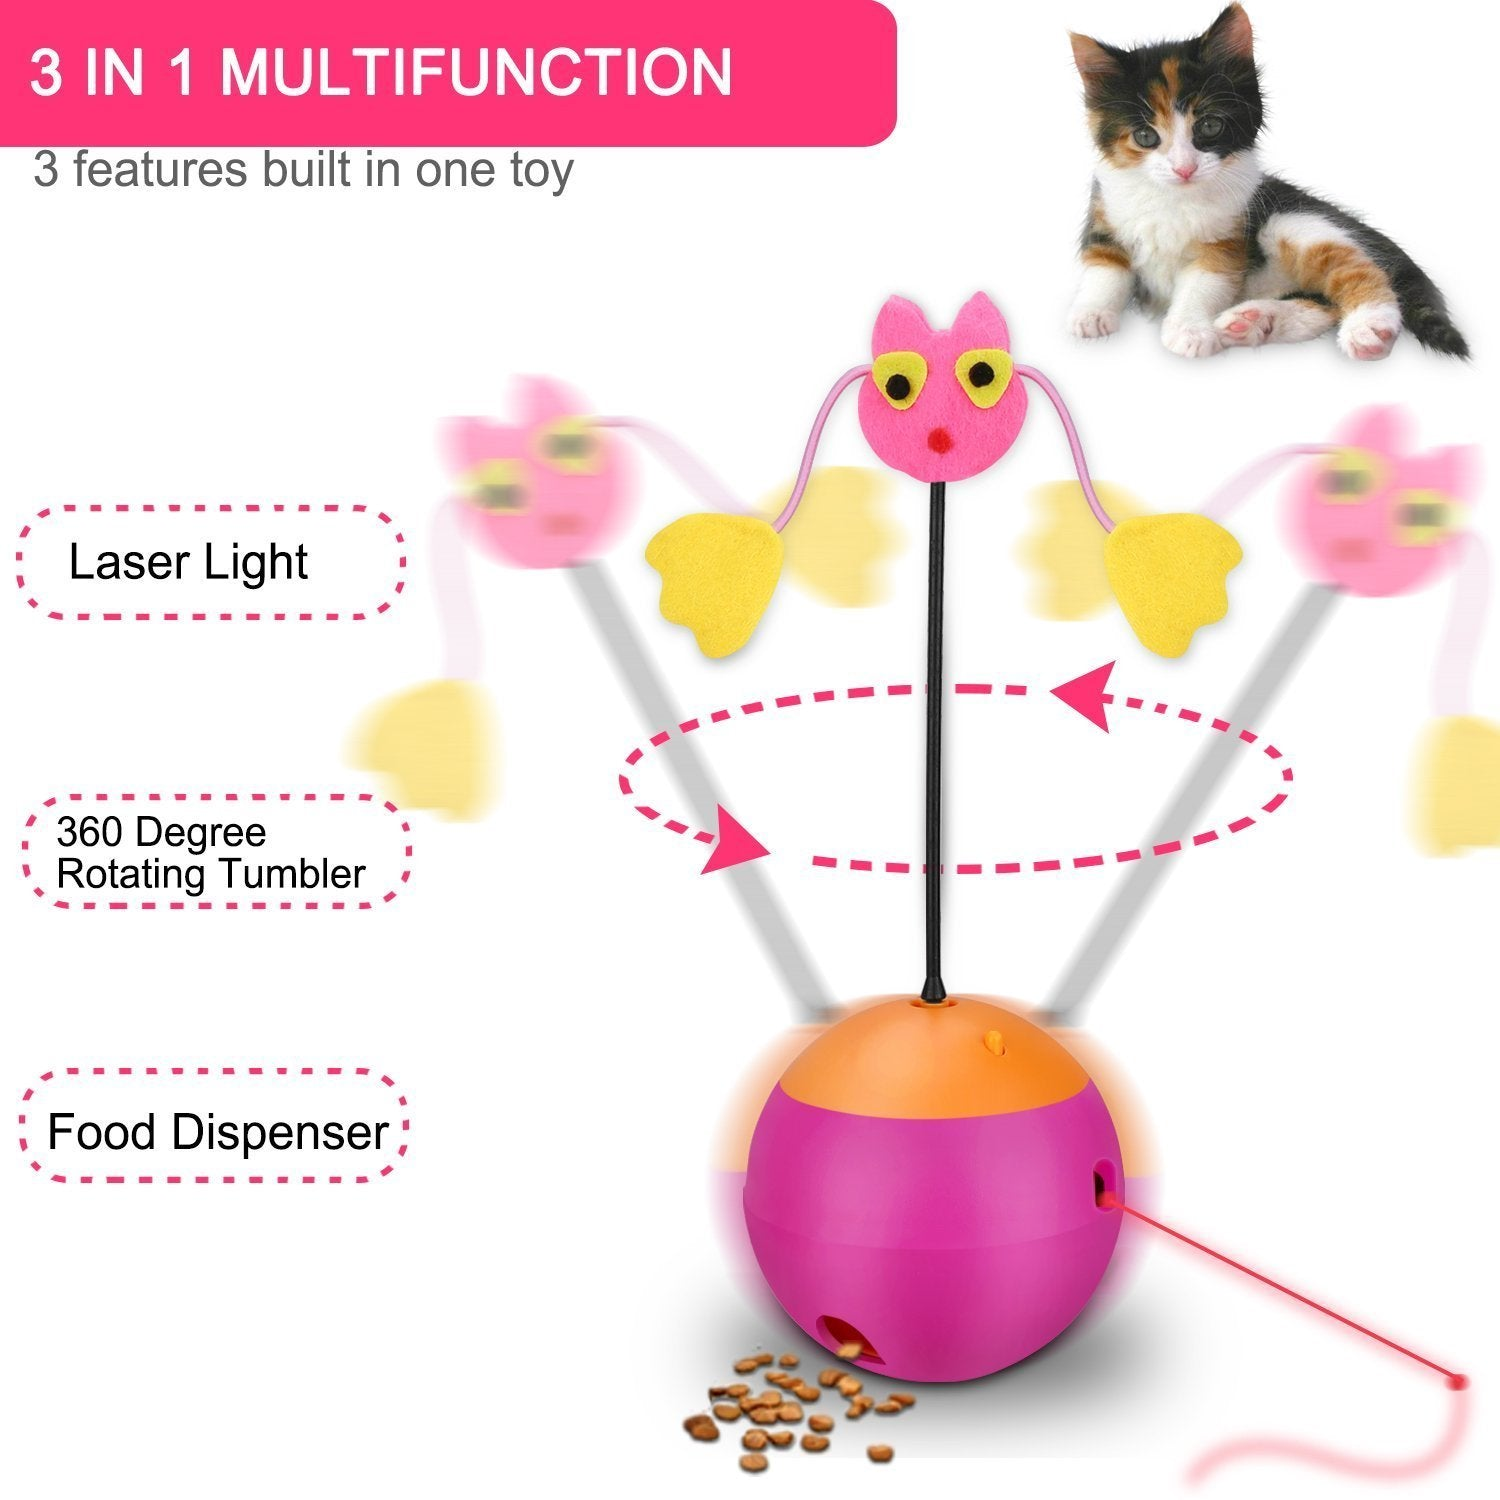 MULTIFUNCTIONAL TUMBLER TEASER CAT TOY